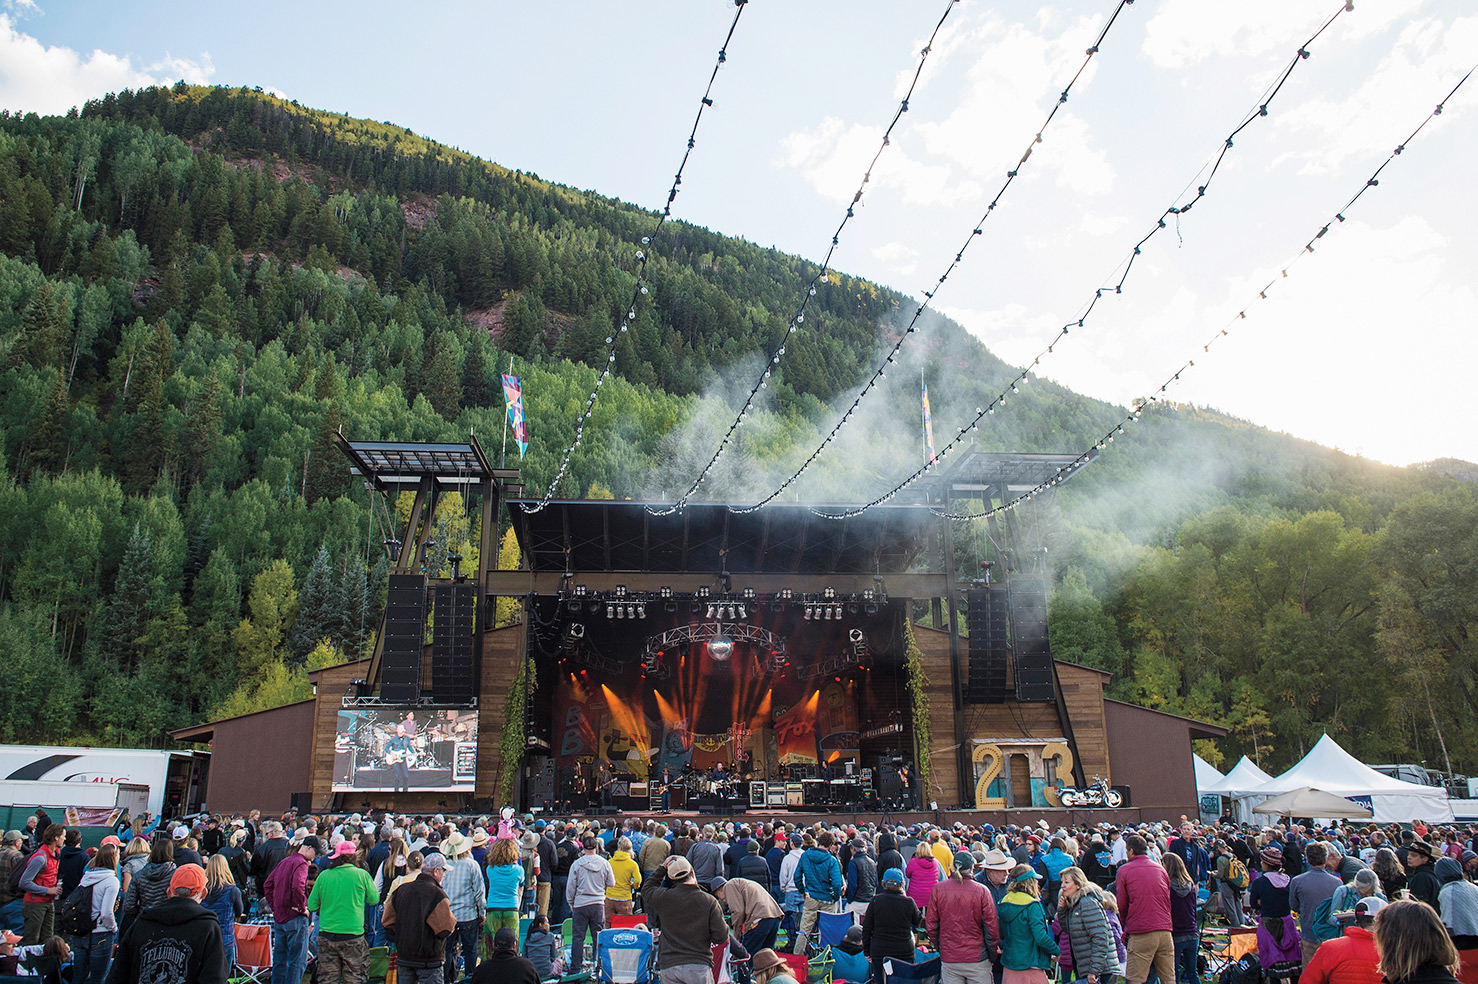 TELLURIDE, CO - SEPTEMBER 16: Jason Isbell & The 400 Unit perform on September 16, 2016 in Telluride, Colorado. (Photo by Erika Goldring/FilmMagic)